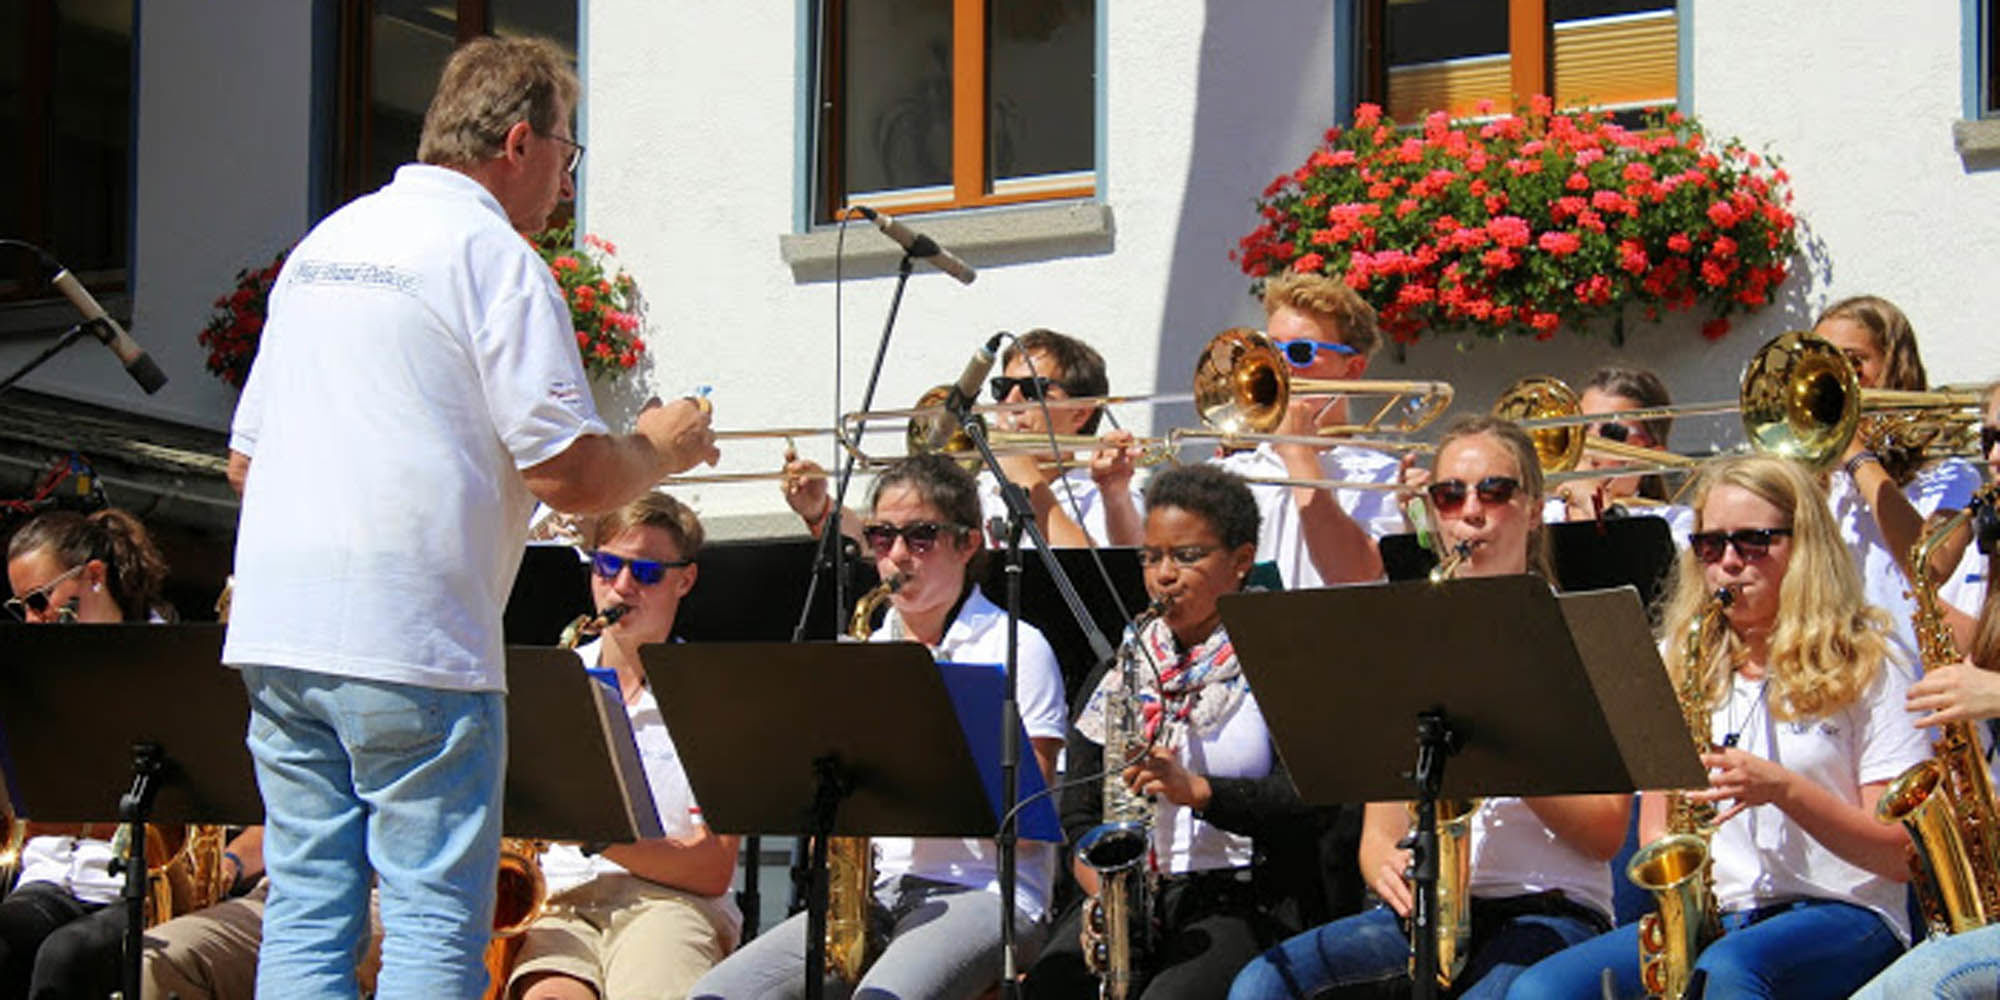 Events in der Freien Ferienrepublik Saas-Fee